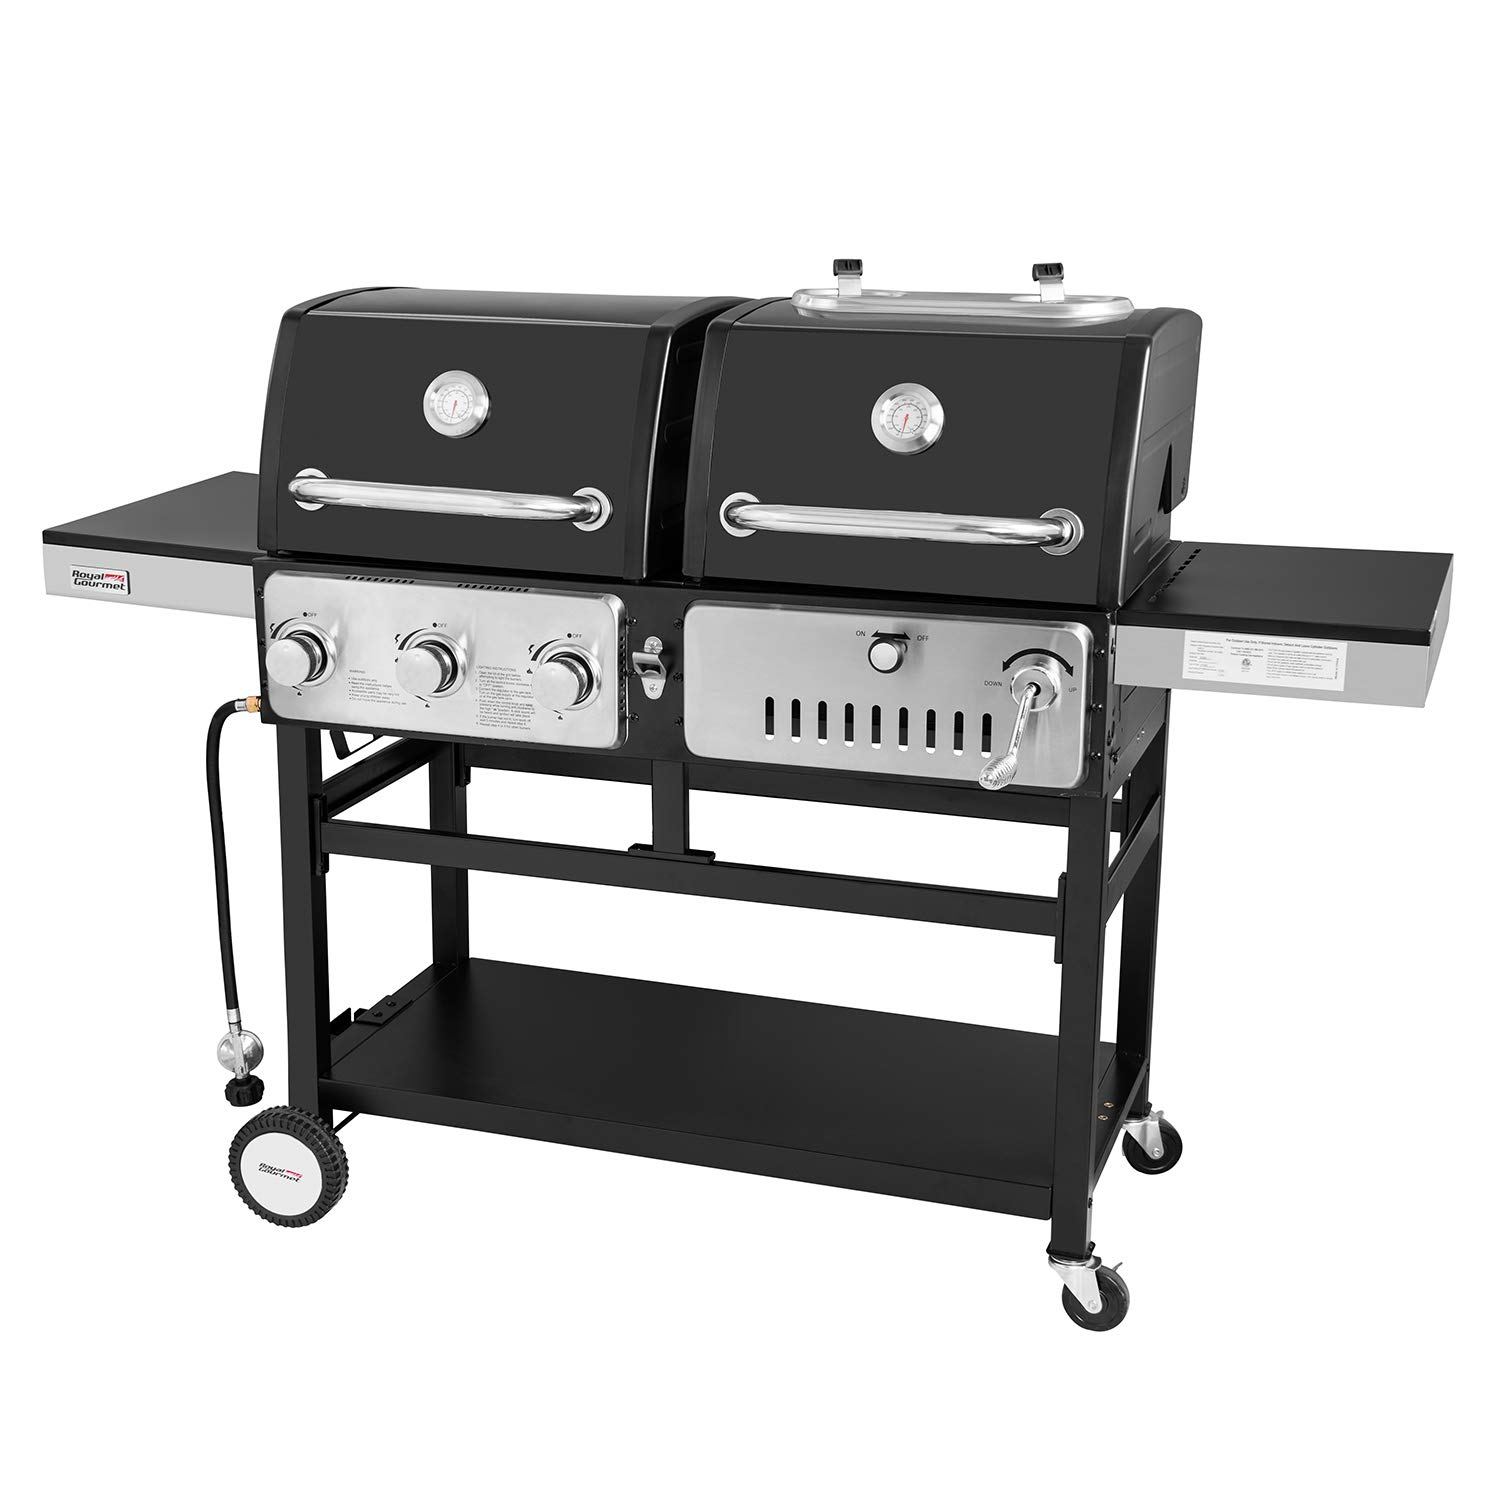 Royal Gourmet Durable Stainless Steel 3-Burner Gas/Charcoal Combo Grill, ZH3003